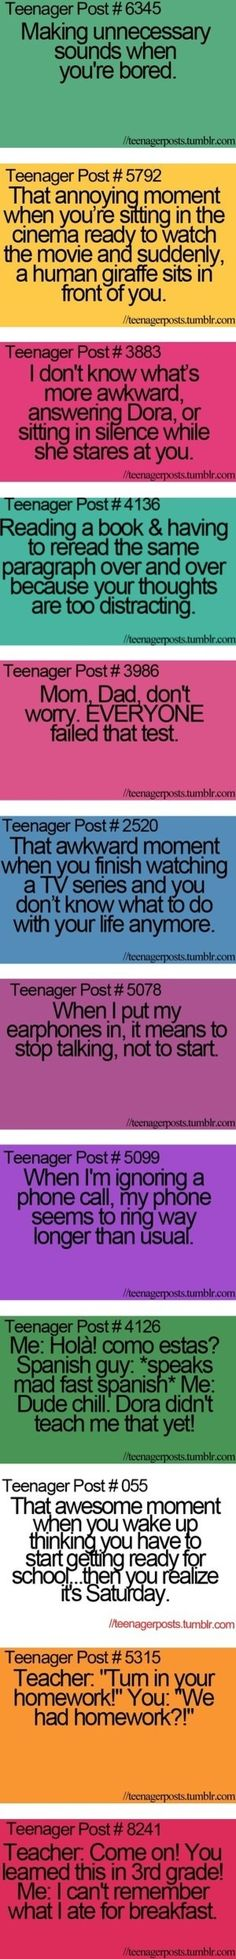 28 ideas funny teenager posts so true lol hilarious Teenager Quotes, Teen Quotes, Teenager Posts Lol, Funny Memes, Hilarious, Jokes, Funny Fails, Beth Moore, Teen Life